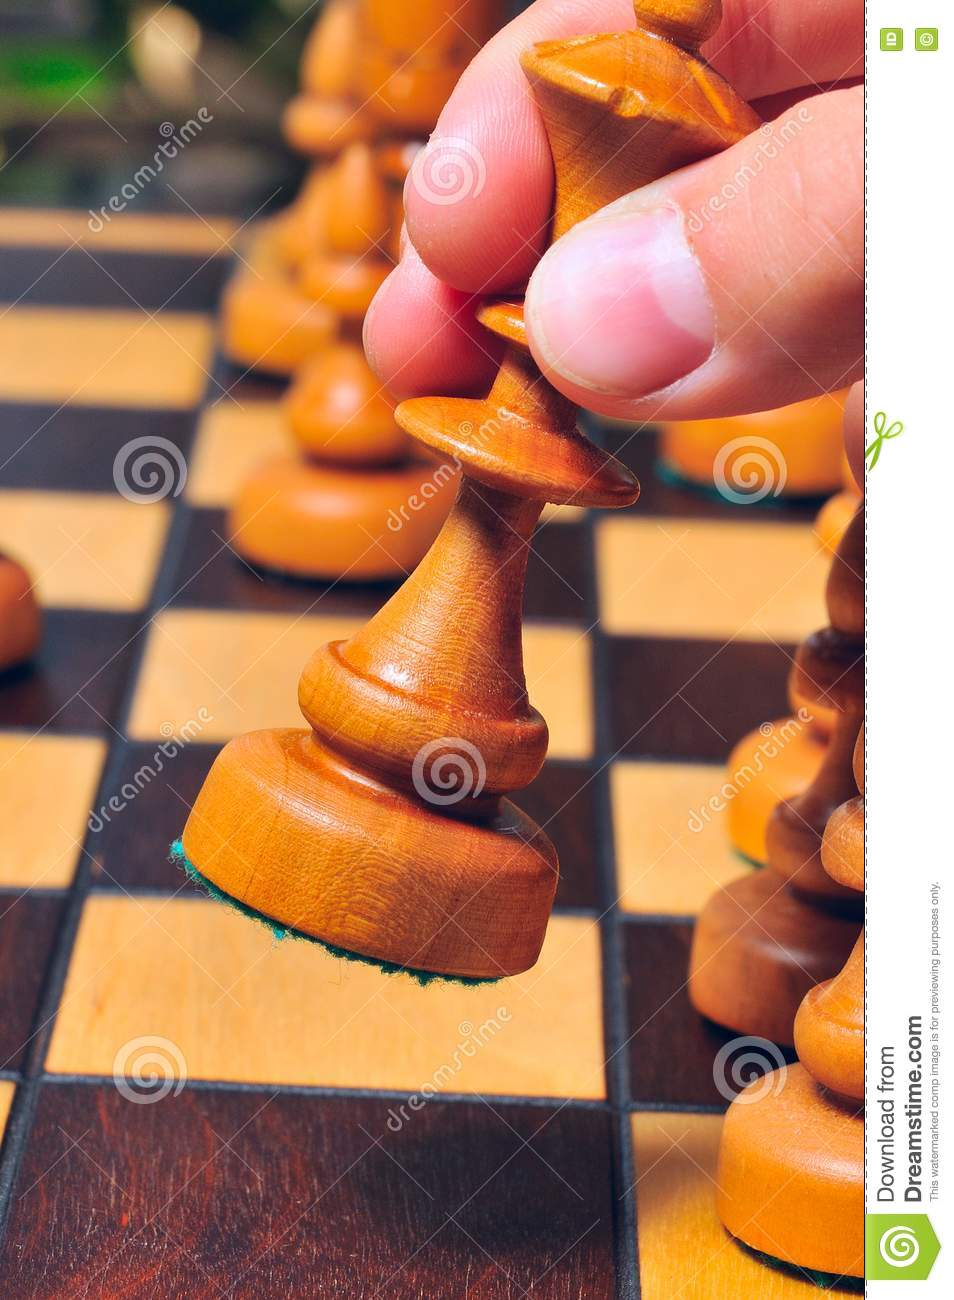 Step White Queen Stock Photo Image Of Competitive